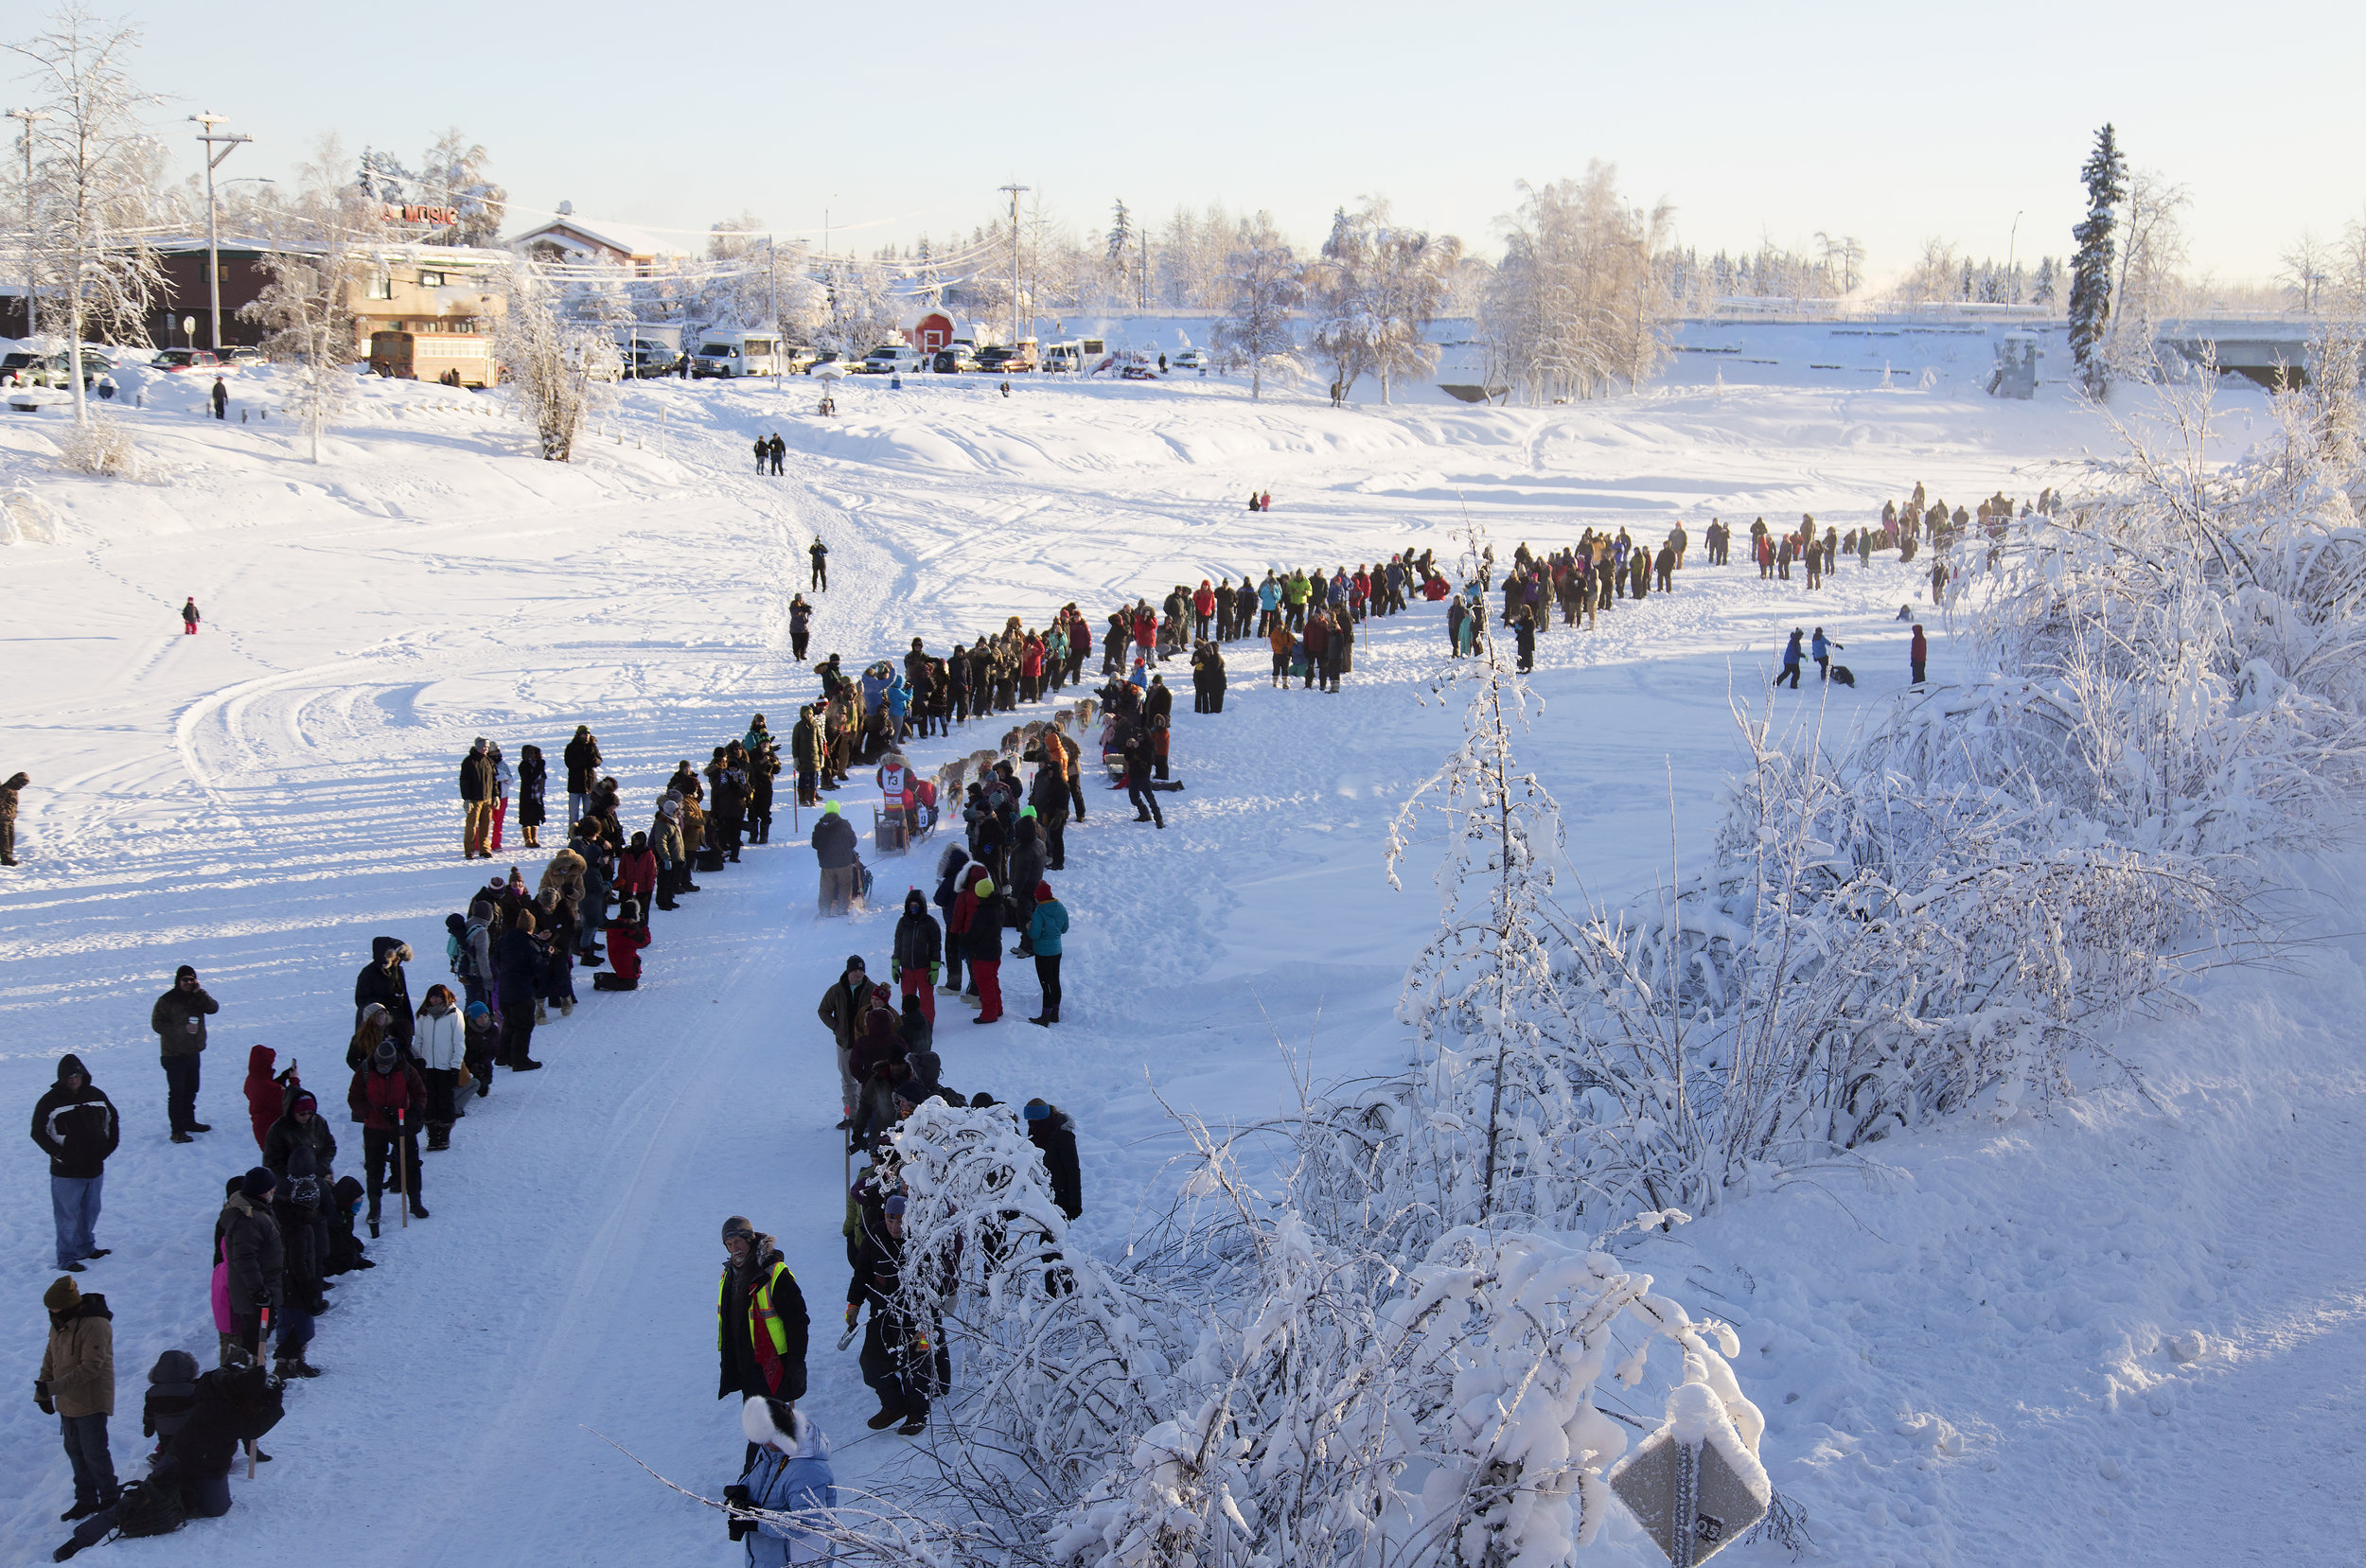 # 15 Laura Neese disappears in the crowd with her team as she ascends out of the chute and onto the frozen Chena River in downtown Fairbanks, AK on the first day of the 2018 Yukon Quest. Spectators line either side of the trail on the frozen river. (c) Sarah Manriquez 2018